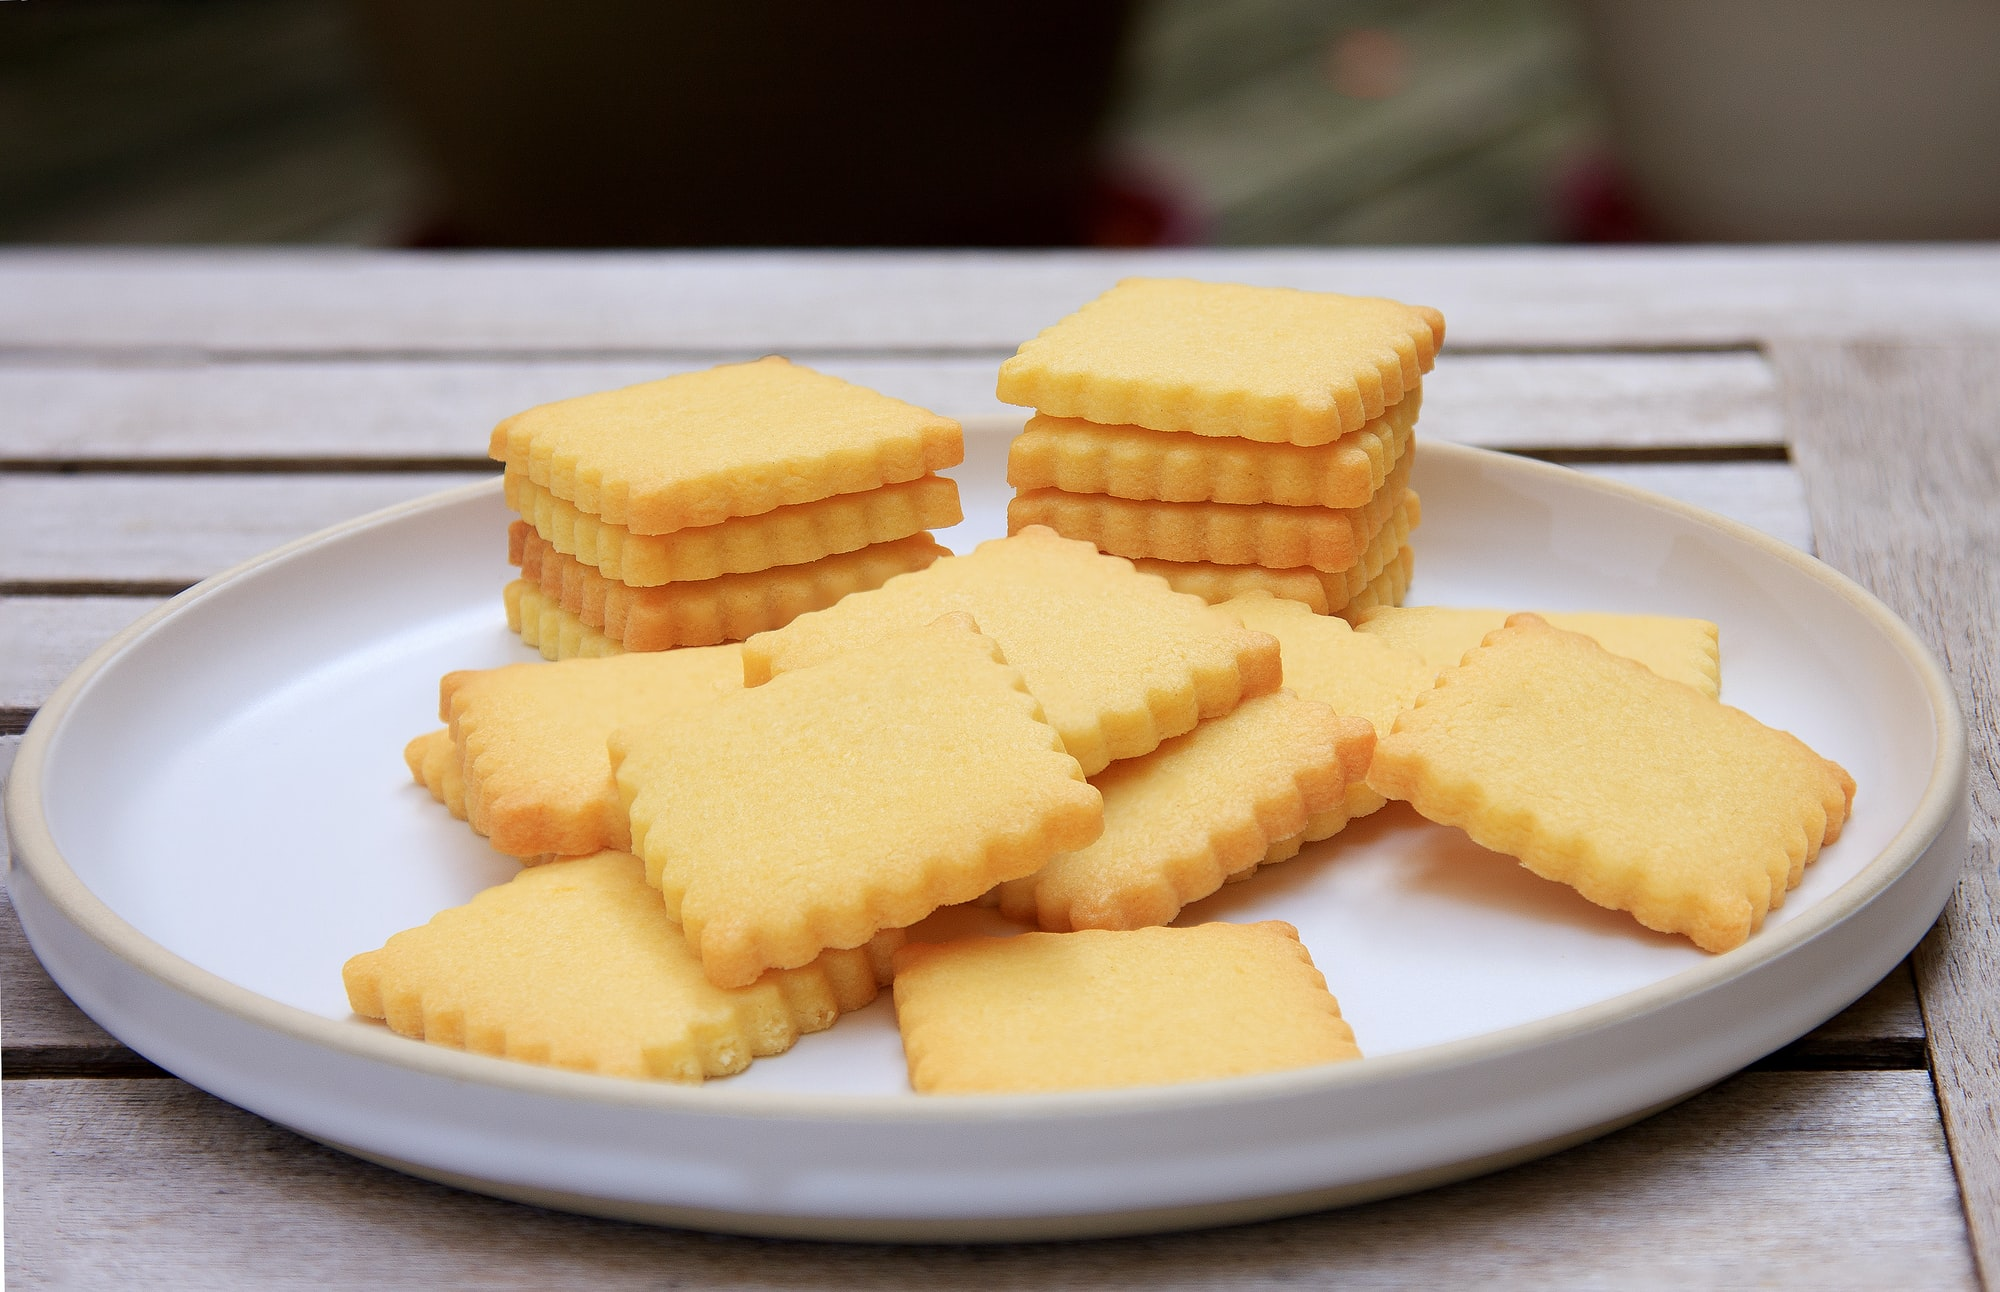 homemade shortbread cookies on a plate on a wooden table